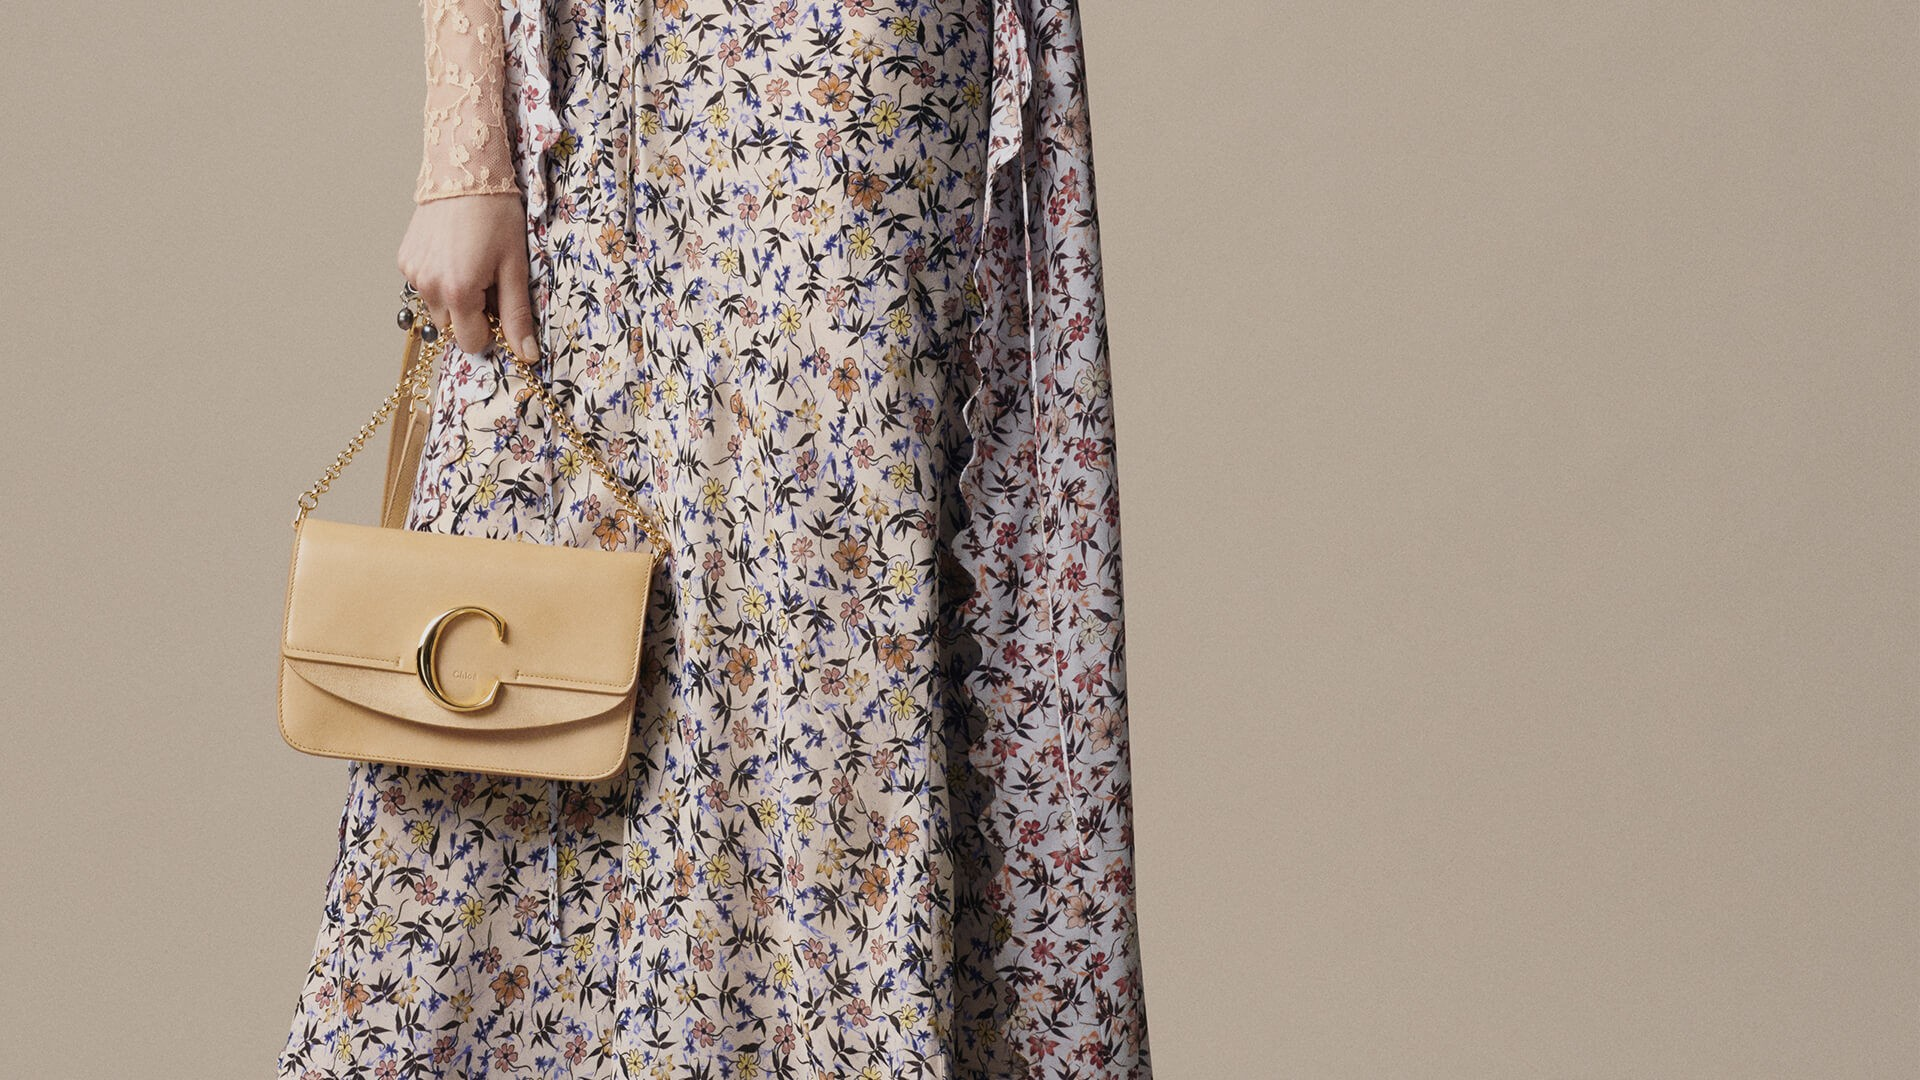 The Chloé C Clutch in faded yellow held by Model dressed in Spring19 Collection